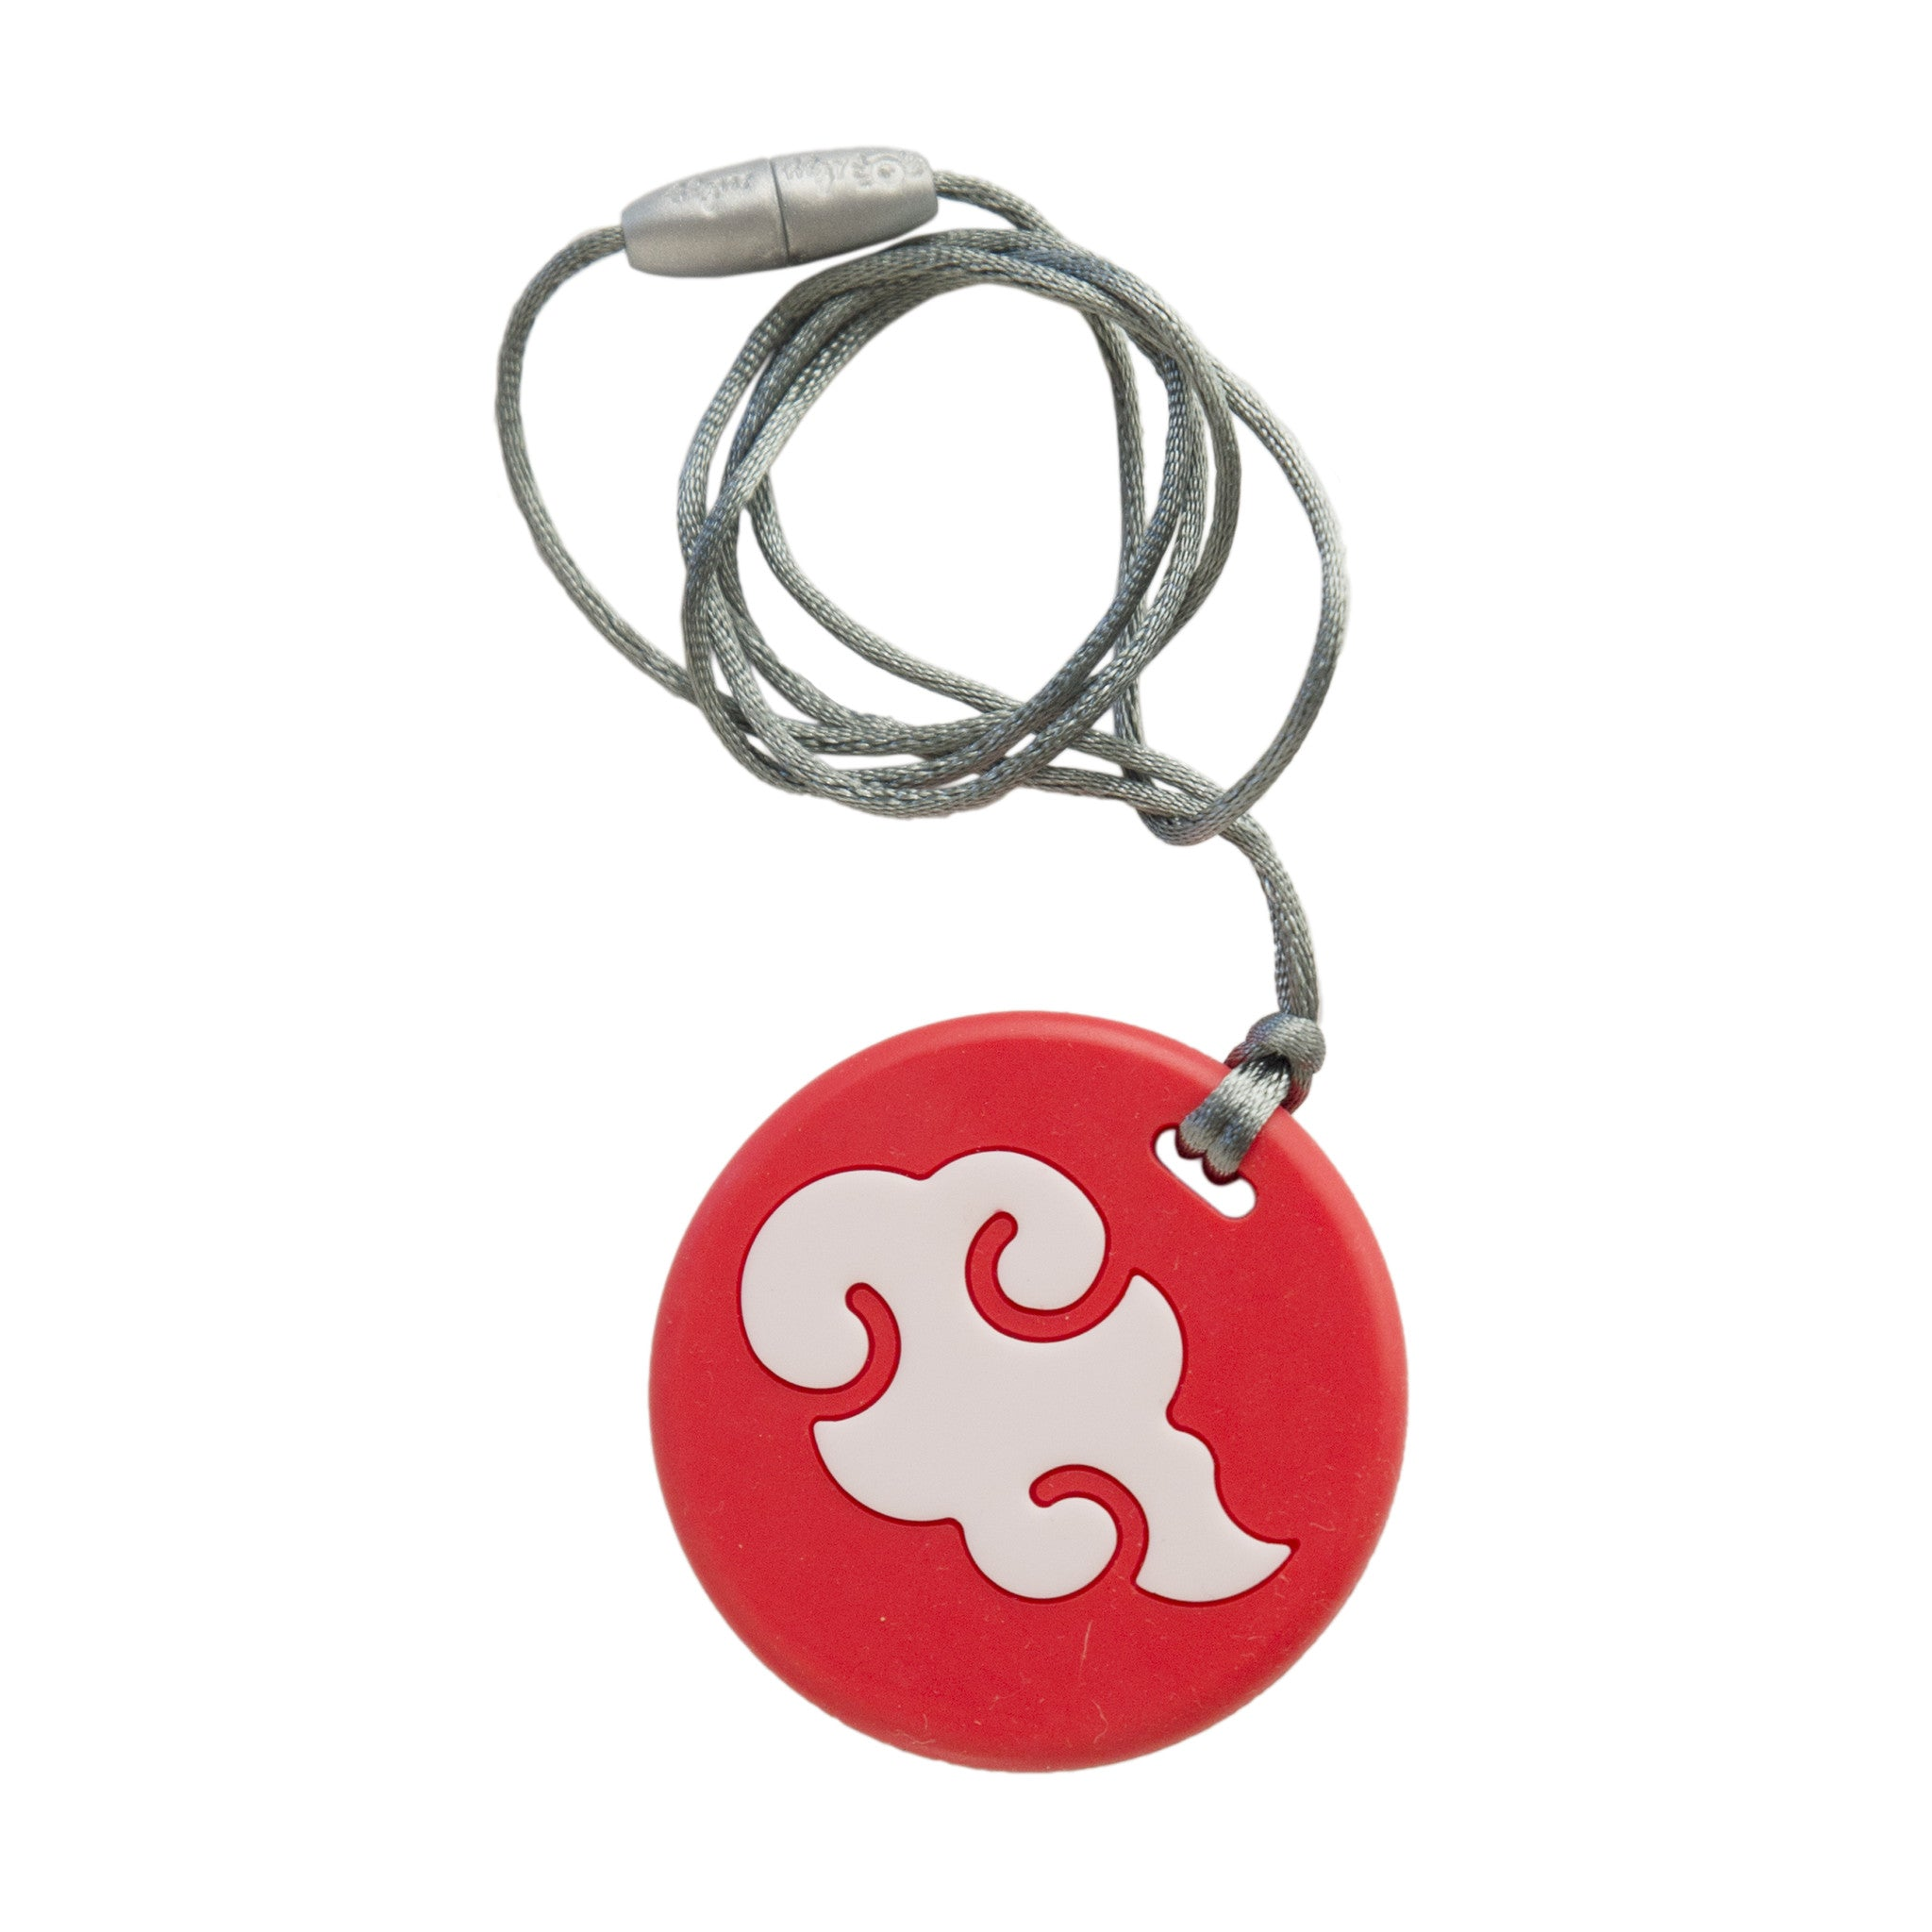 Itzy Ritzy Teething Happens Pendant Necklace